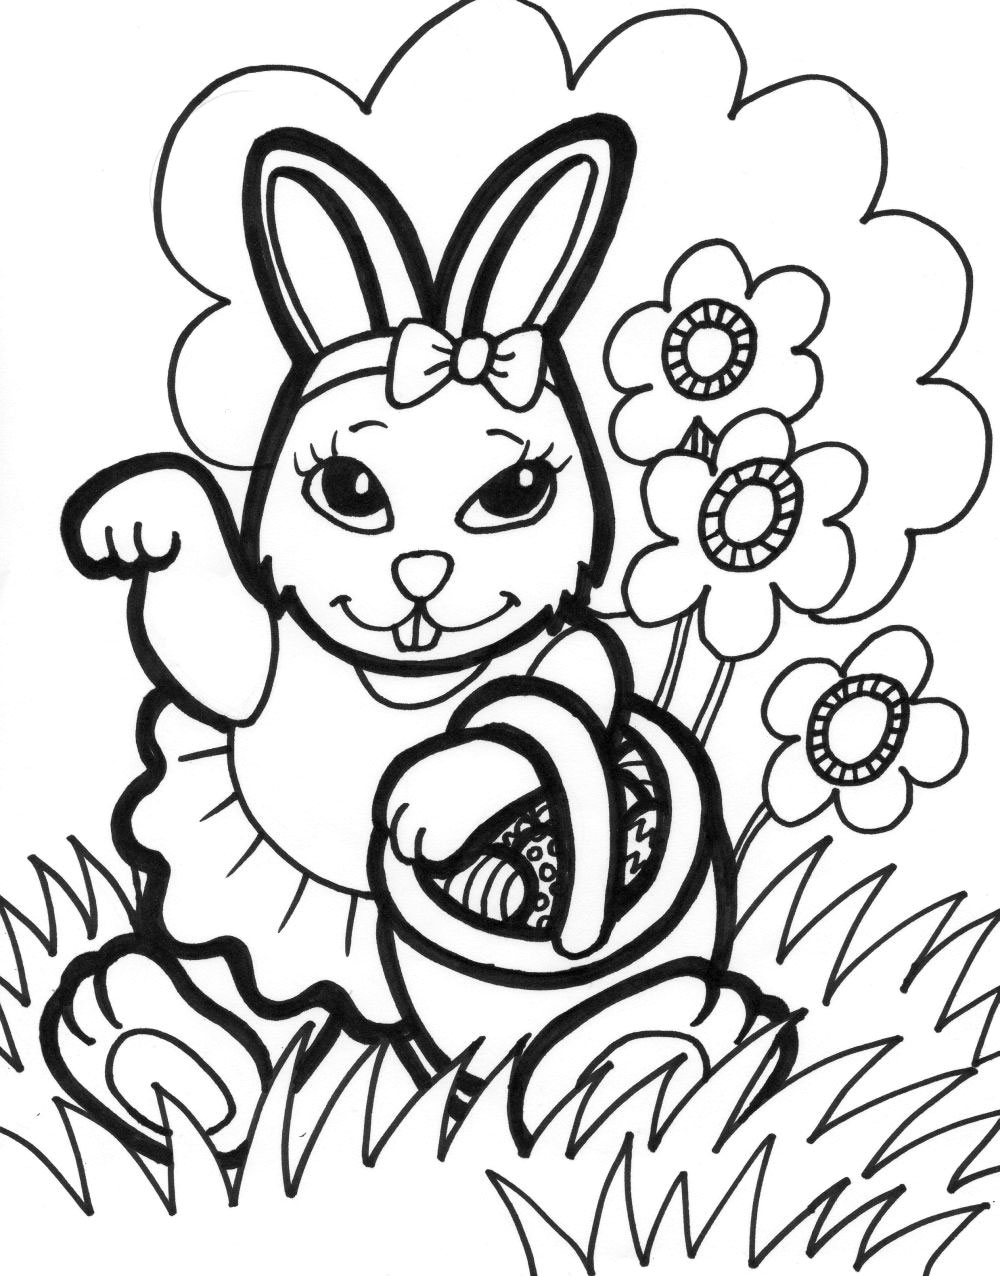 Bunny Coloring Sheets Free Printable 1110 Gallery Of Easter Coloring Pages for Kids Crazy Little Projects Printable